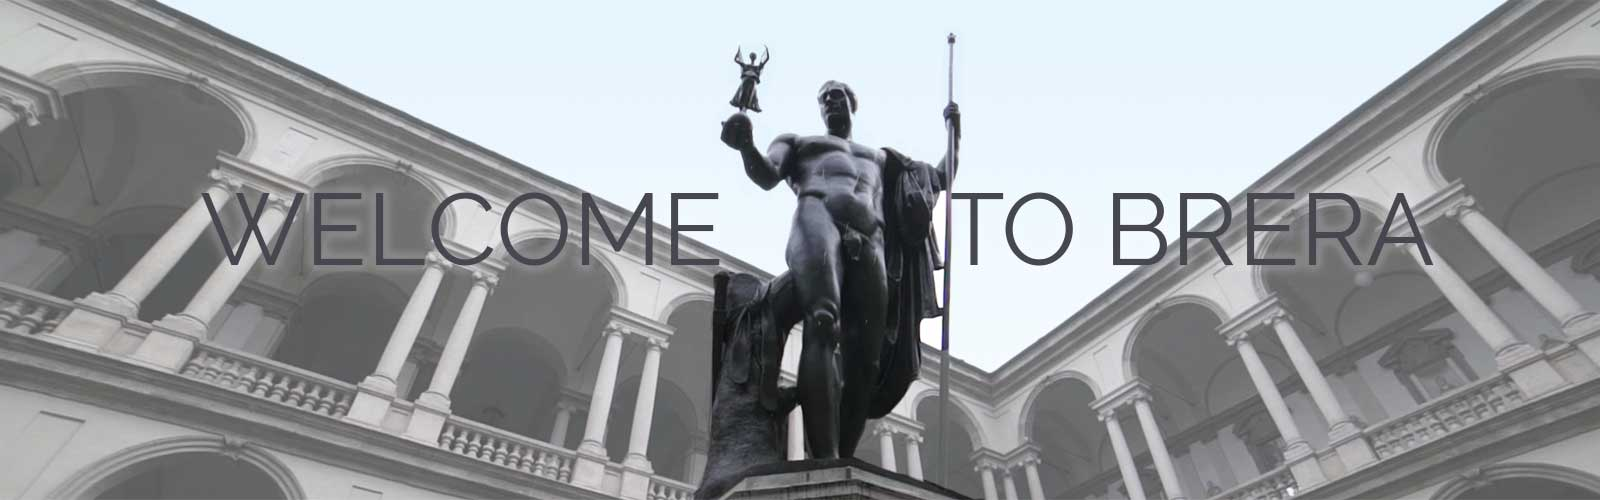 Welcome to Brera